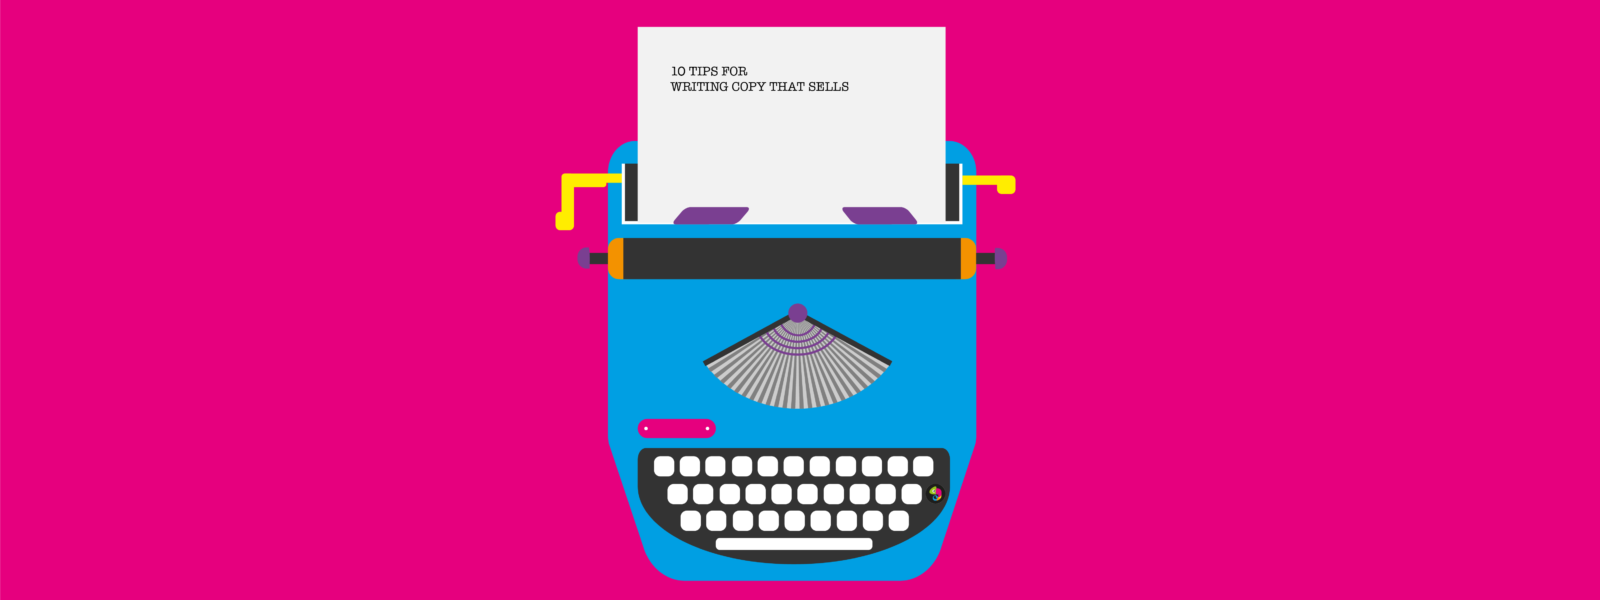 Colourful typewriter on bright-pink background, with paper that says '10 tips for writing copy that sells'.